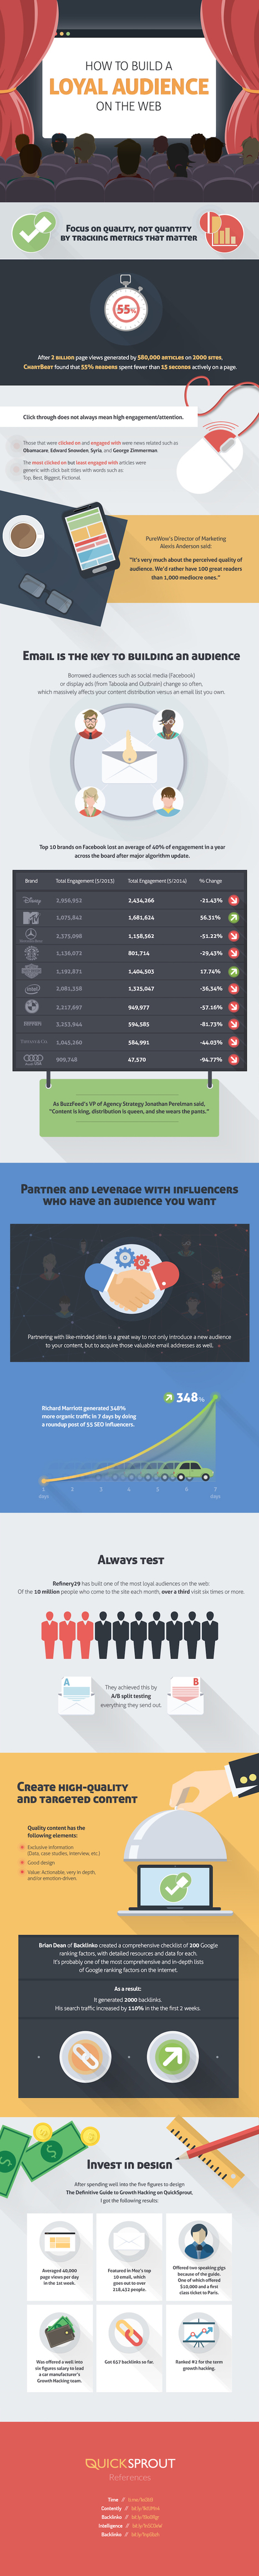 How to Build a Loyal Audience on the Web | FutureSocial | Scoop.it